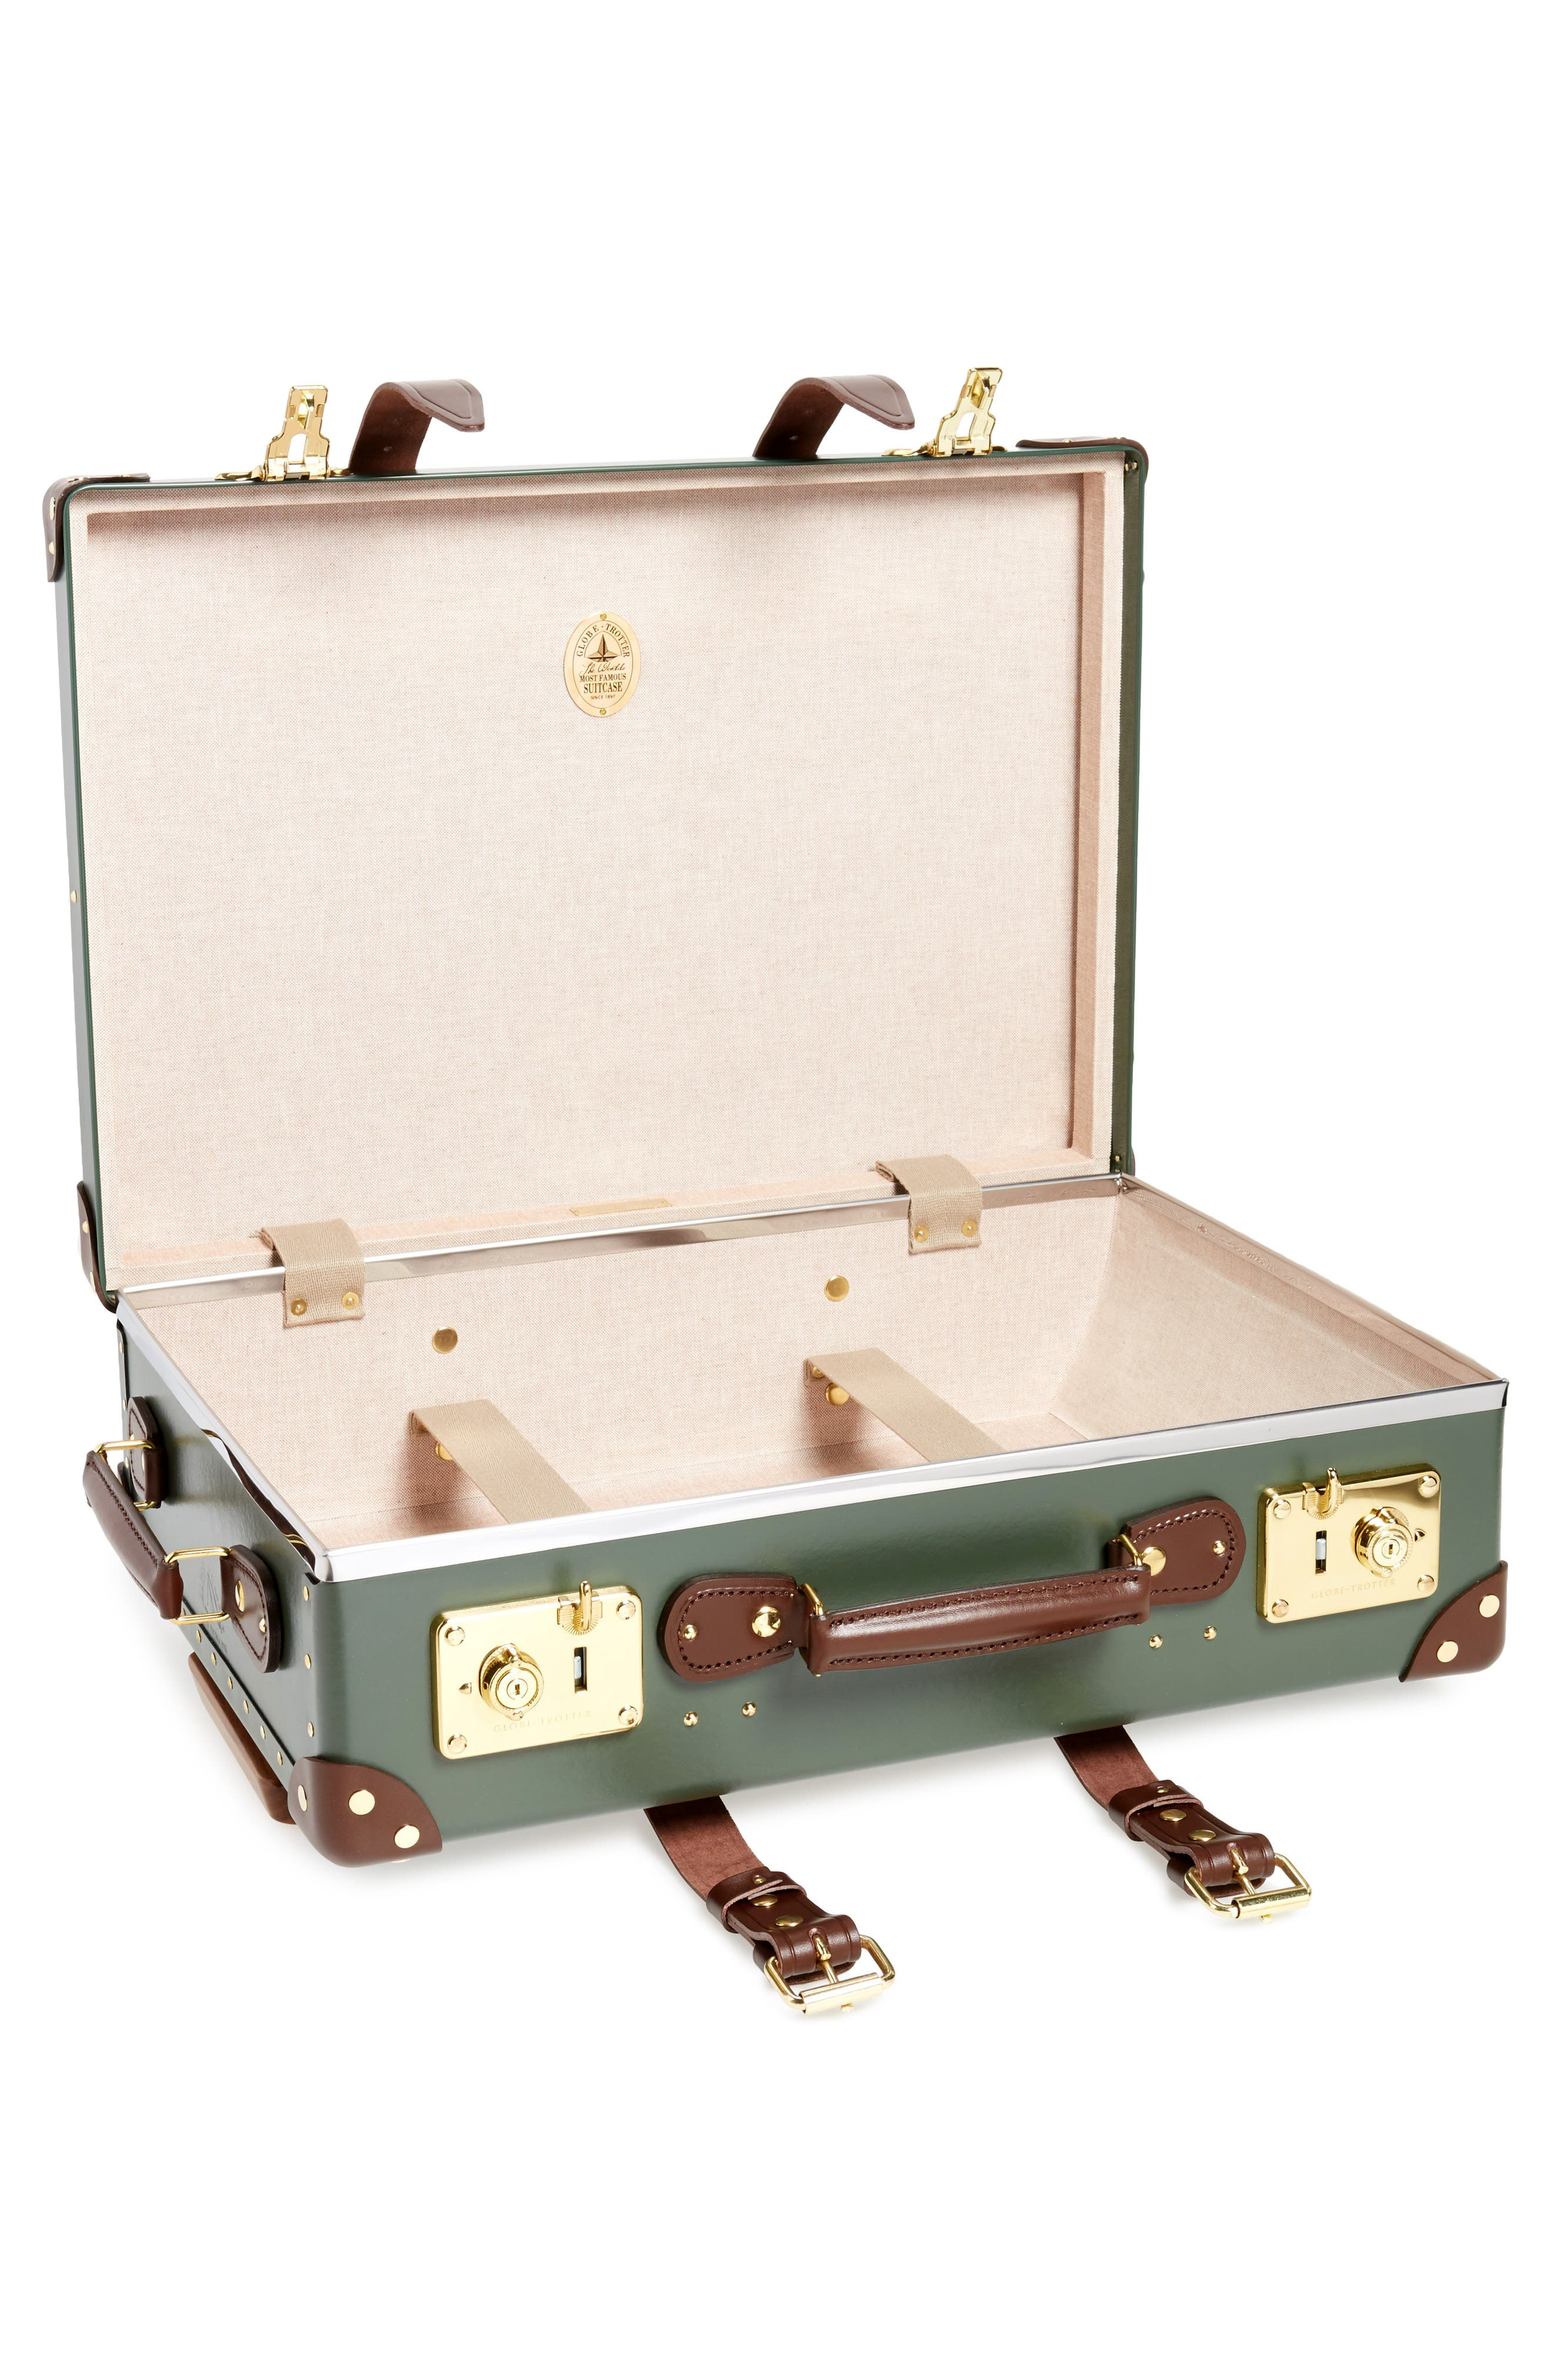 Centenary 21-Inch Hardshell Travel Trolley Case,                             Alternate thumbnail 2, color,                             Green/Tan